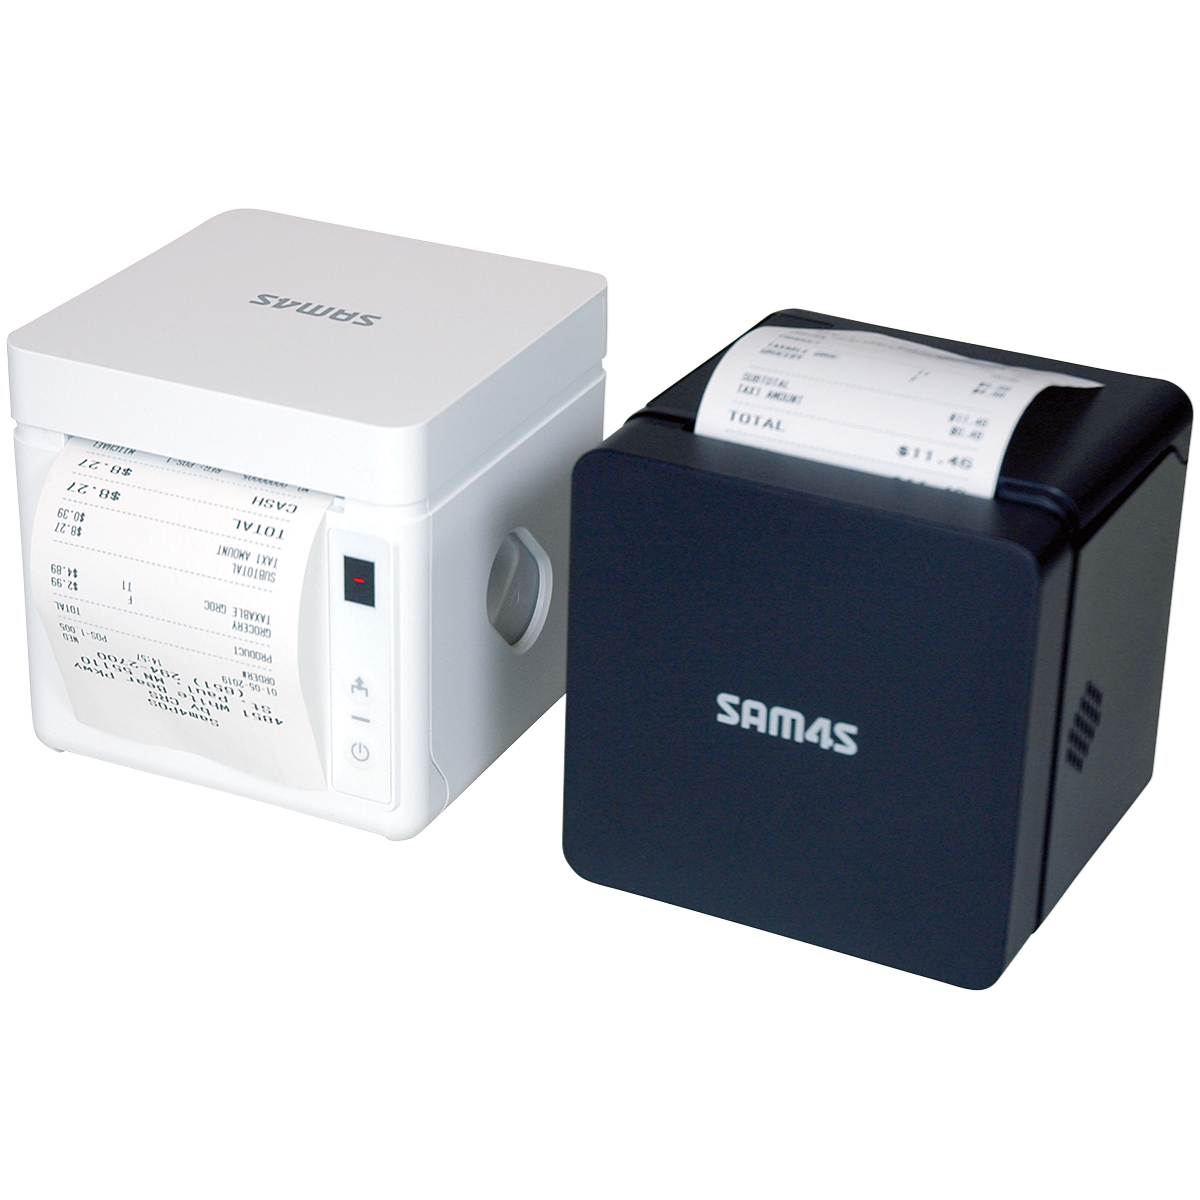 SAM4s Cube Style Thermal Receipt Printer